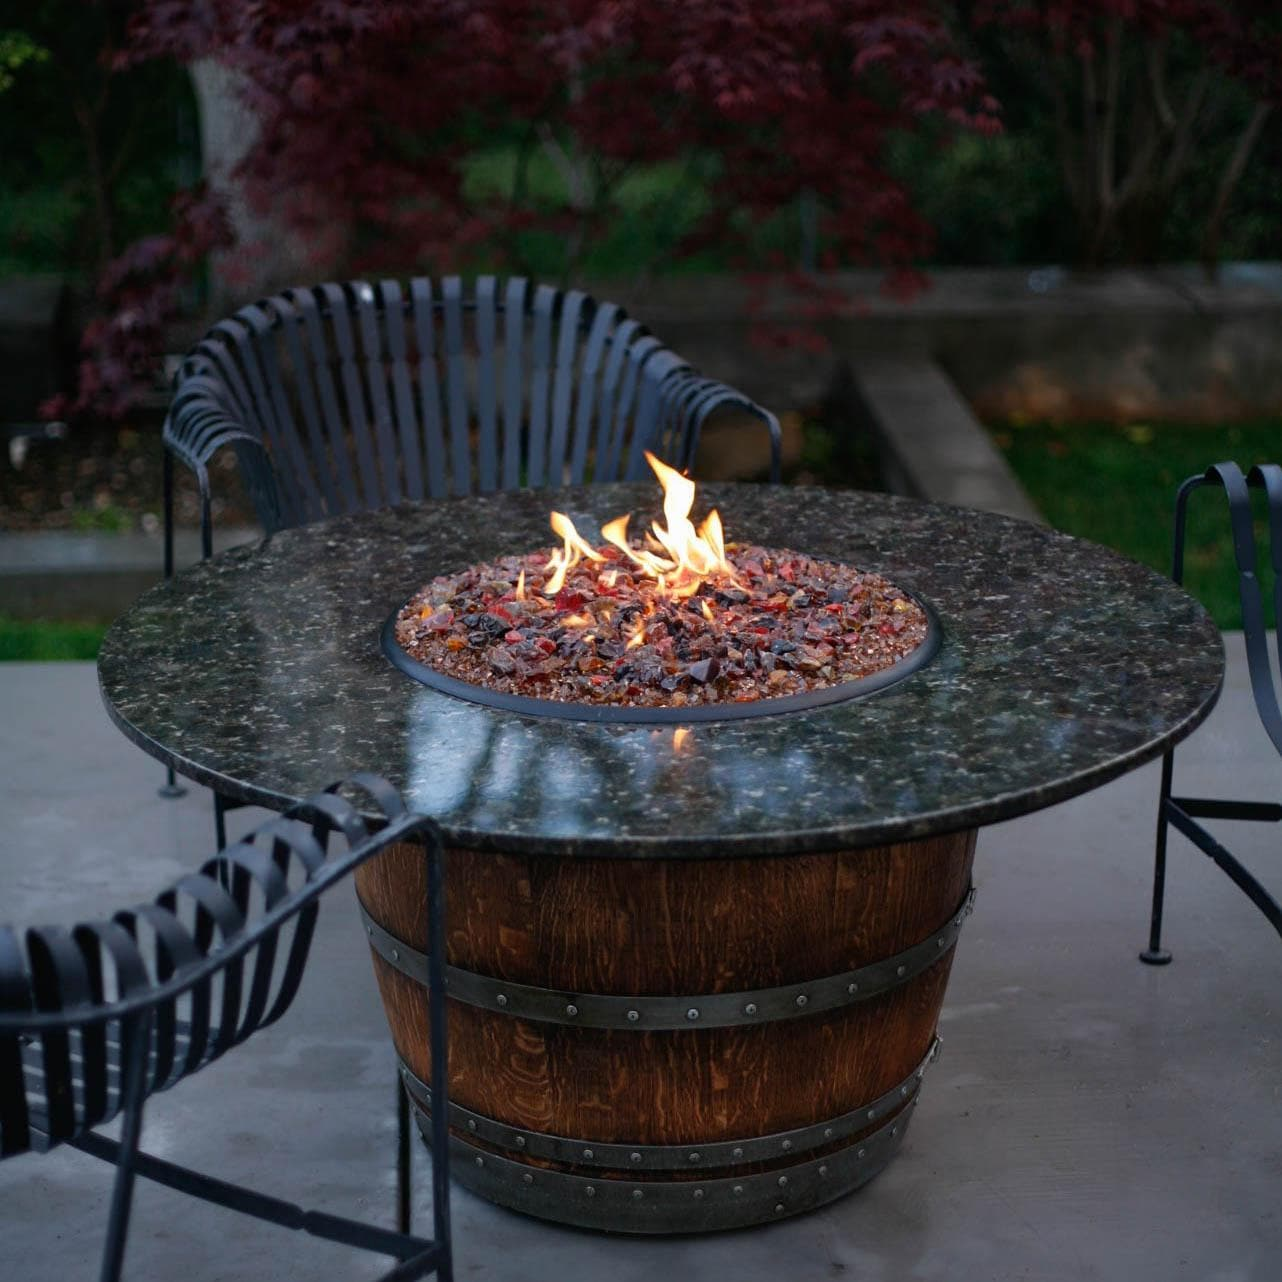 Reserve 60-Inch Wine Barrel Fire Pit Table By Vin De Flame - Dining Height - Reserve 60-Inch Wine Barrel Fire Pit Table By Vin De Flame - Dining